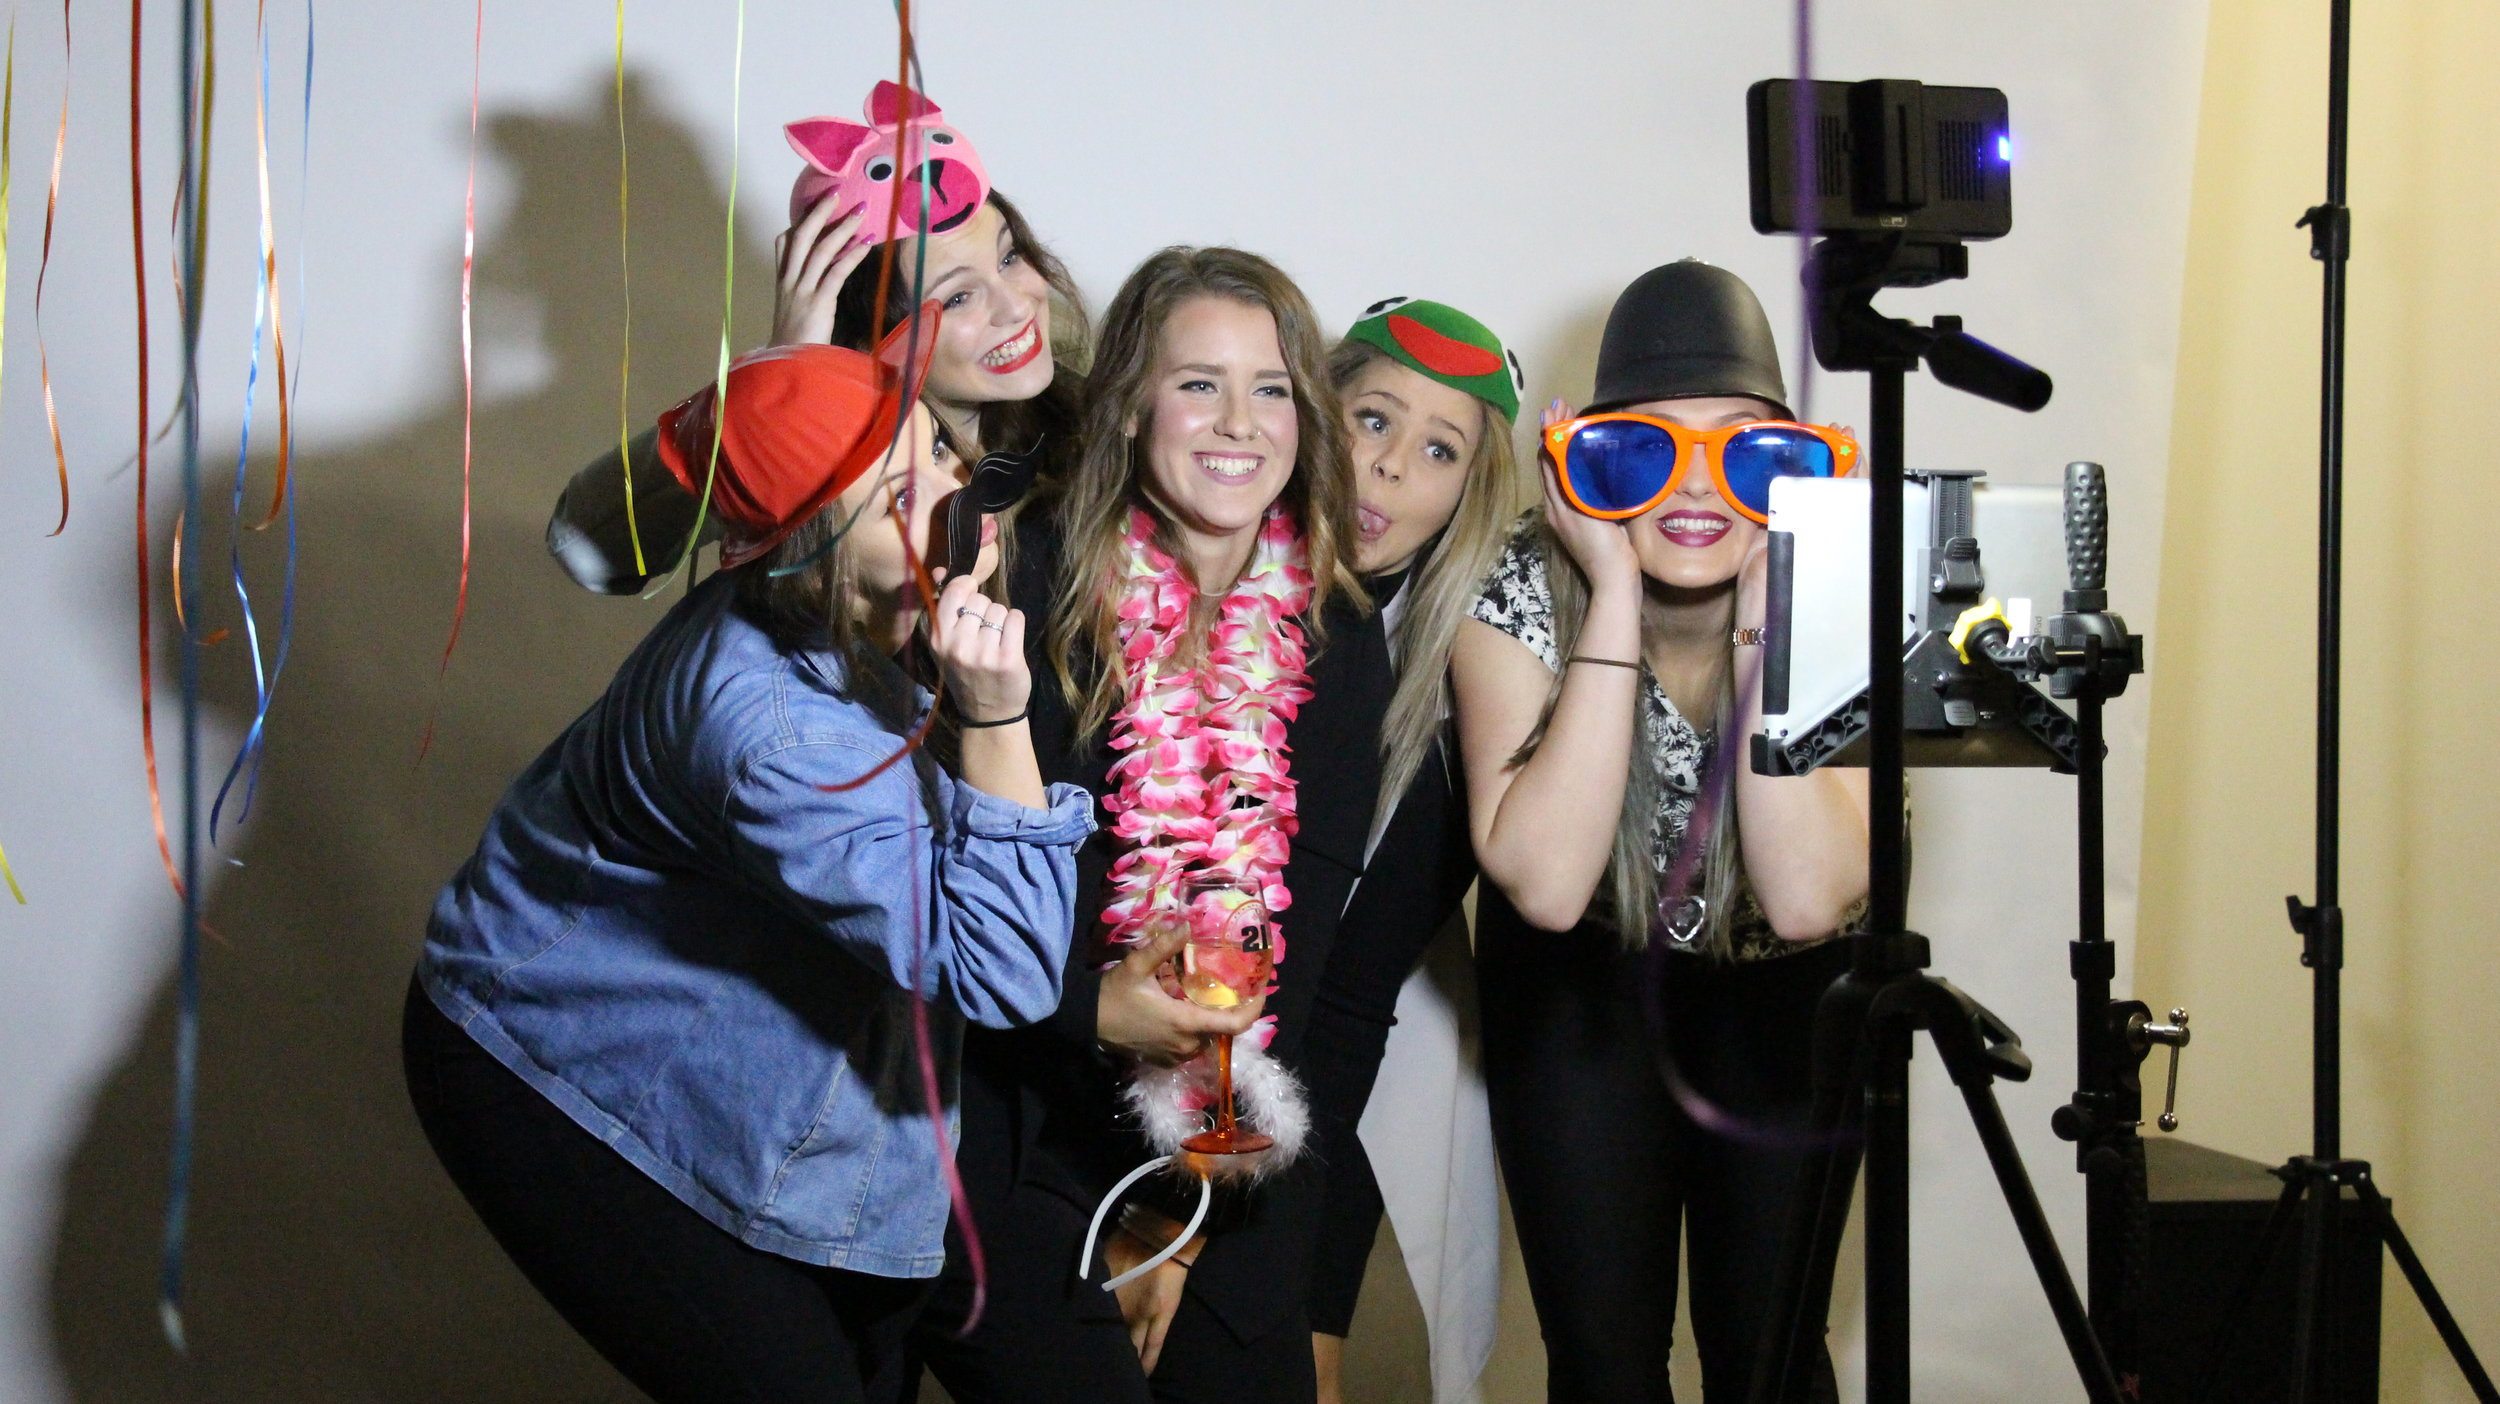 Photo Booth - MBE's Photobooth service is a popular addition to any event - from Weddings to 1st birthdays, the Photobooth acts as a great ice breaker and additional activity to an event for guests to have a laugh, meet some new people and take a memory (Photobooth strip) home with them. Booth includes staff members, personalised logo, guest book, props and more